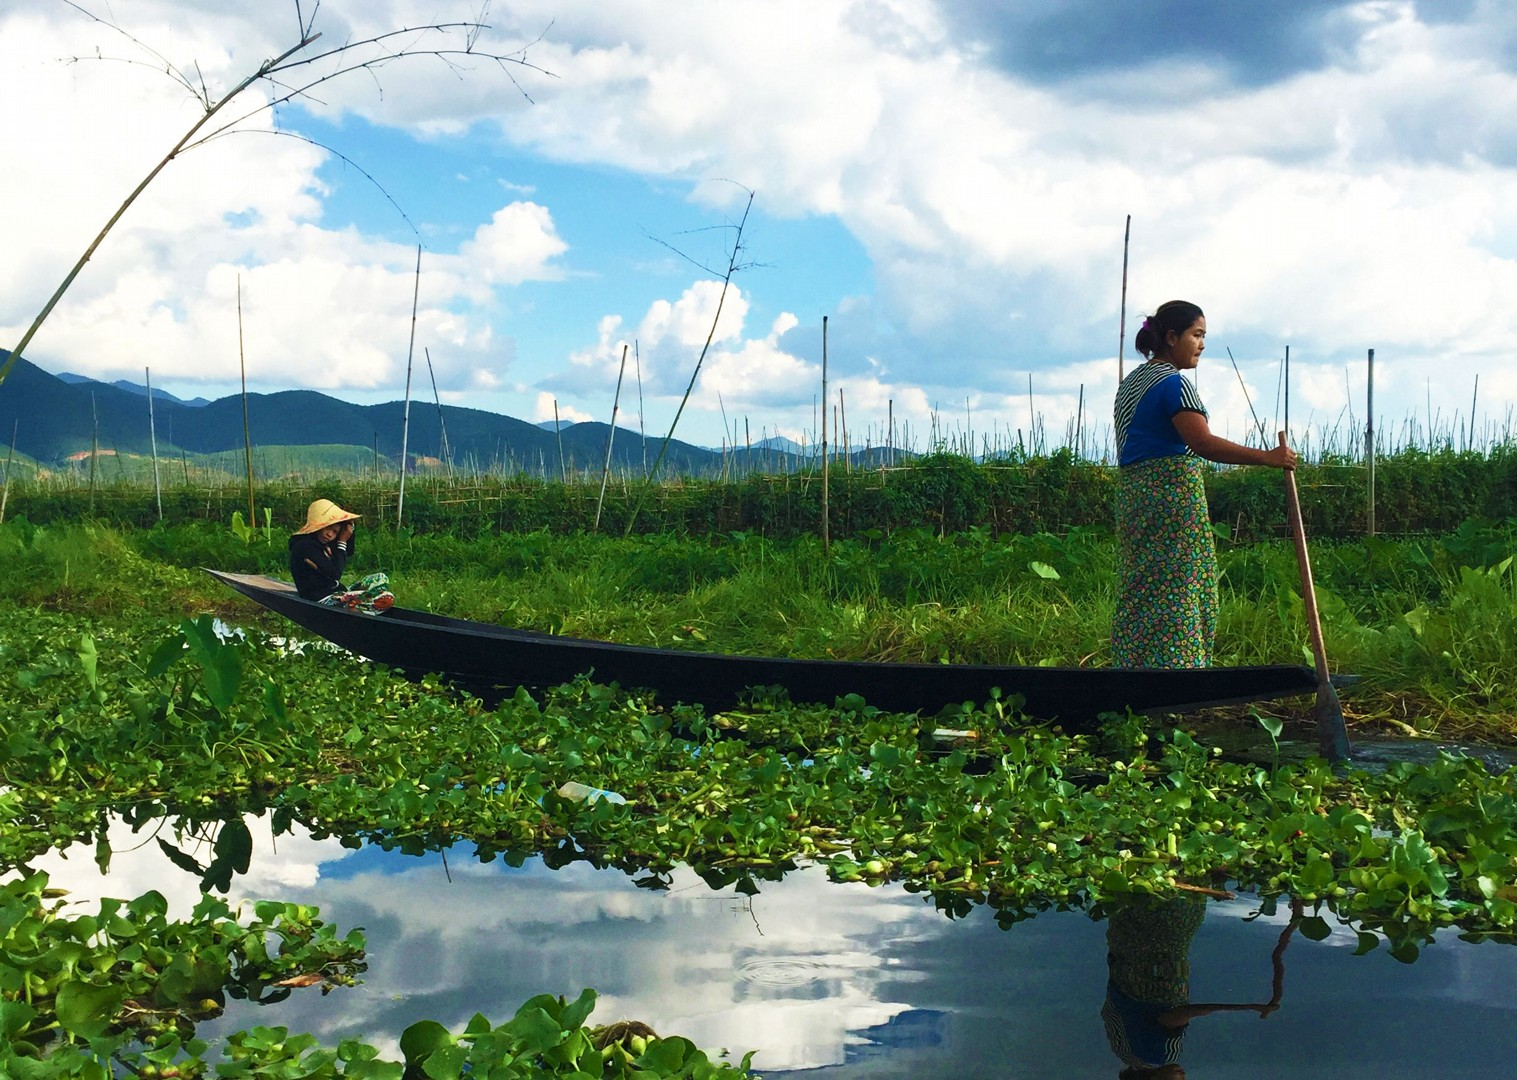 explore-idyllic-inle-lake-by-boat-burma-cycling-trip.jpg - Myanmar (Burma) - Bagan and Beyond - Cycling Adventures